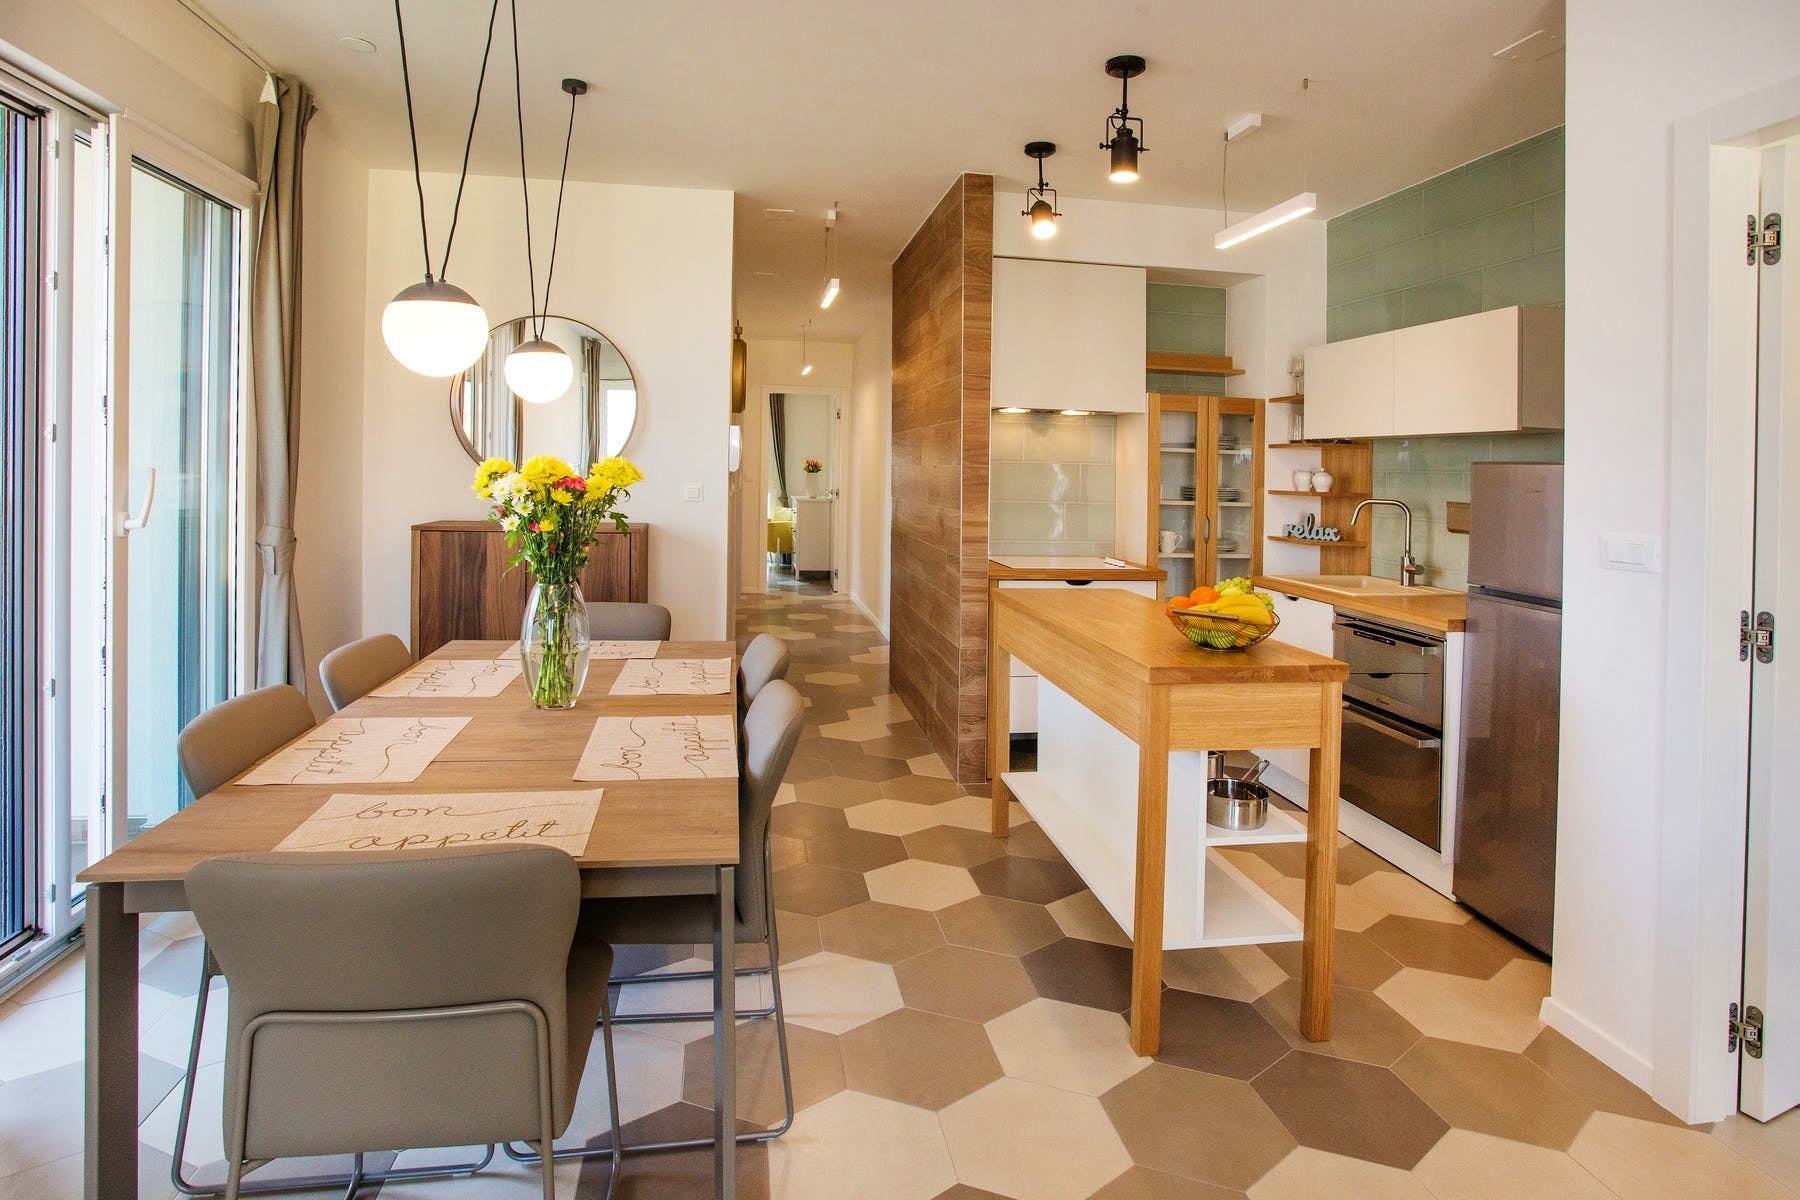 Spacious kitchen and dinig room